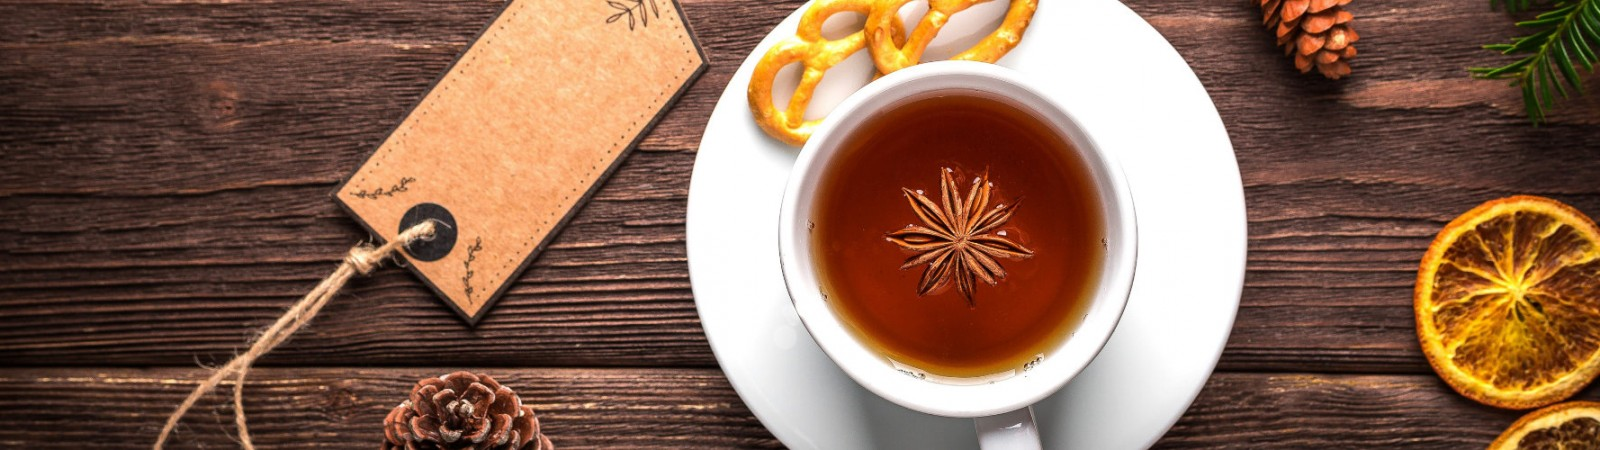 Do you prepare Tea properly? Here is How to Do it